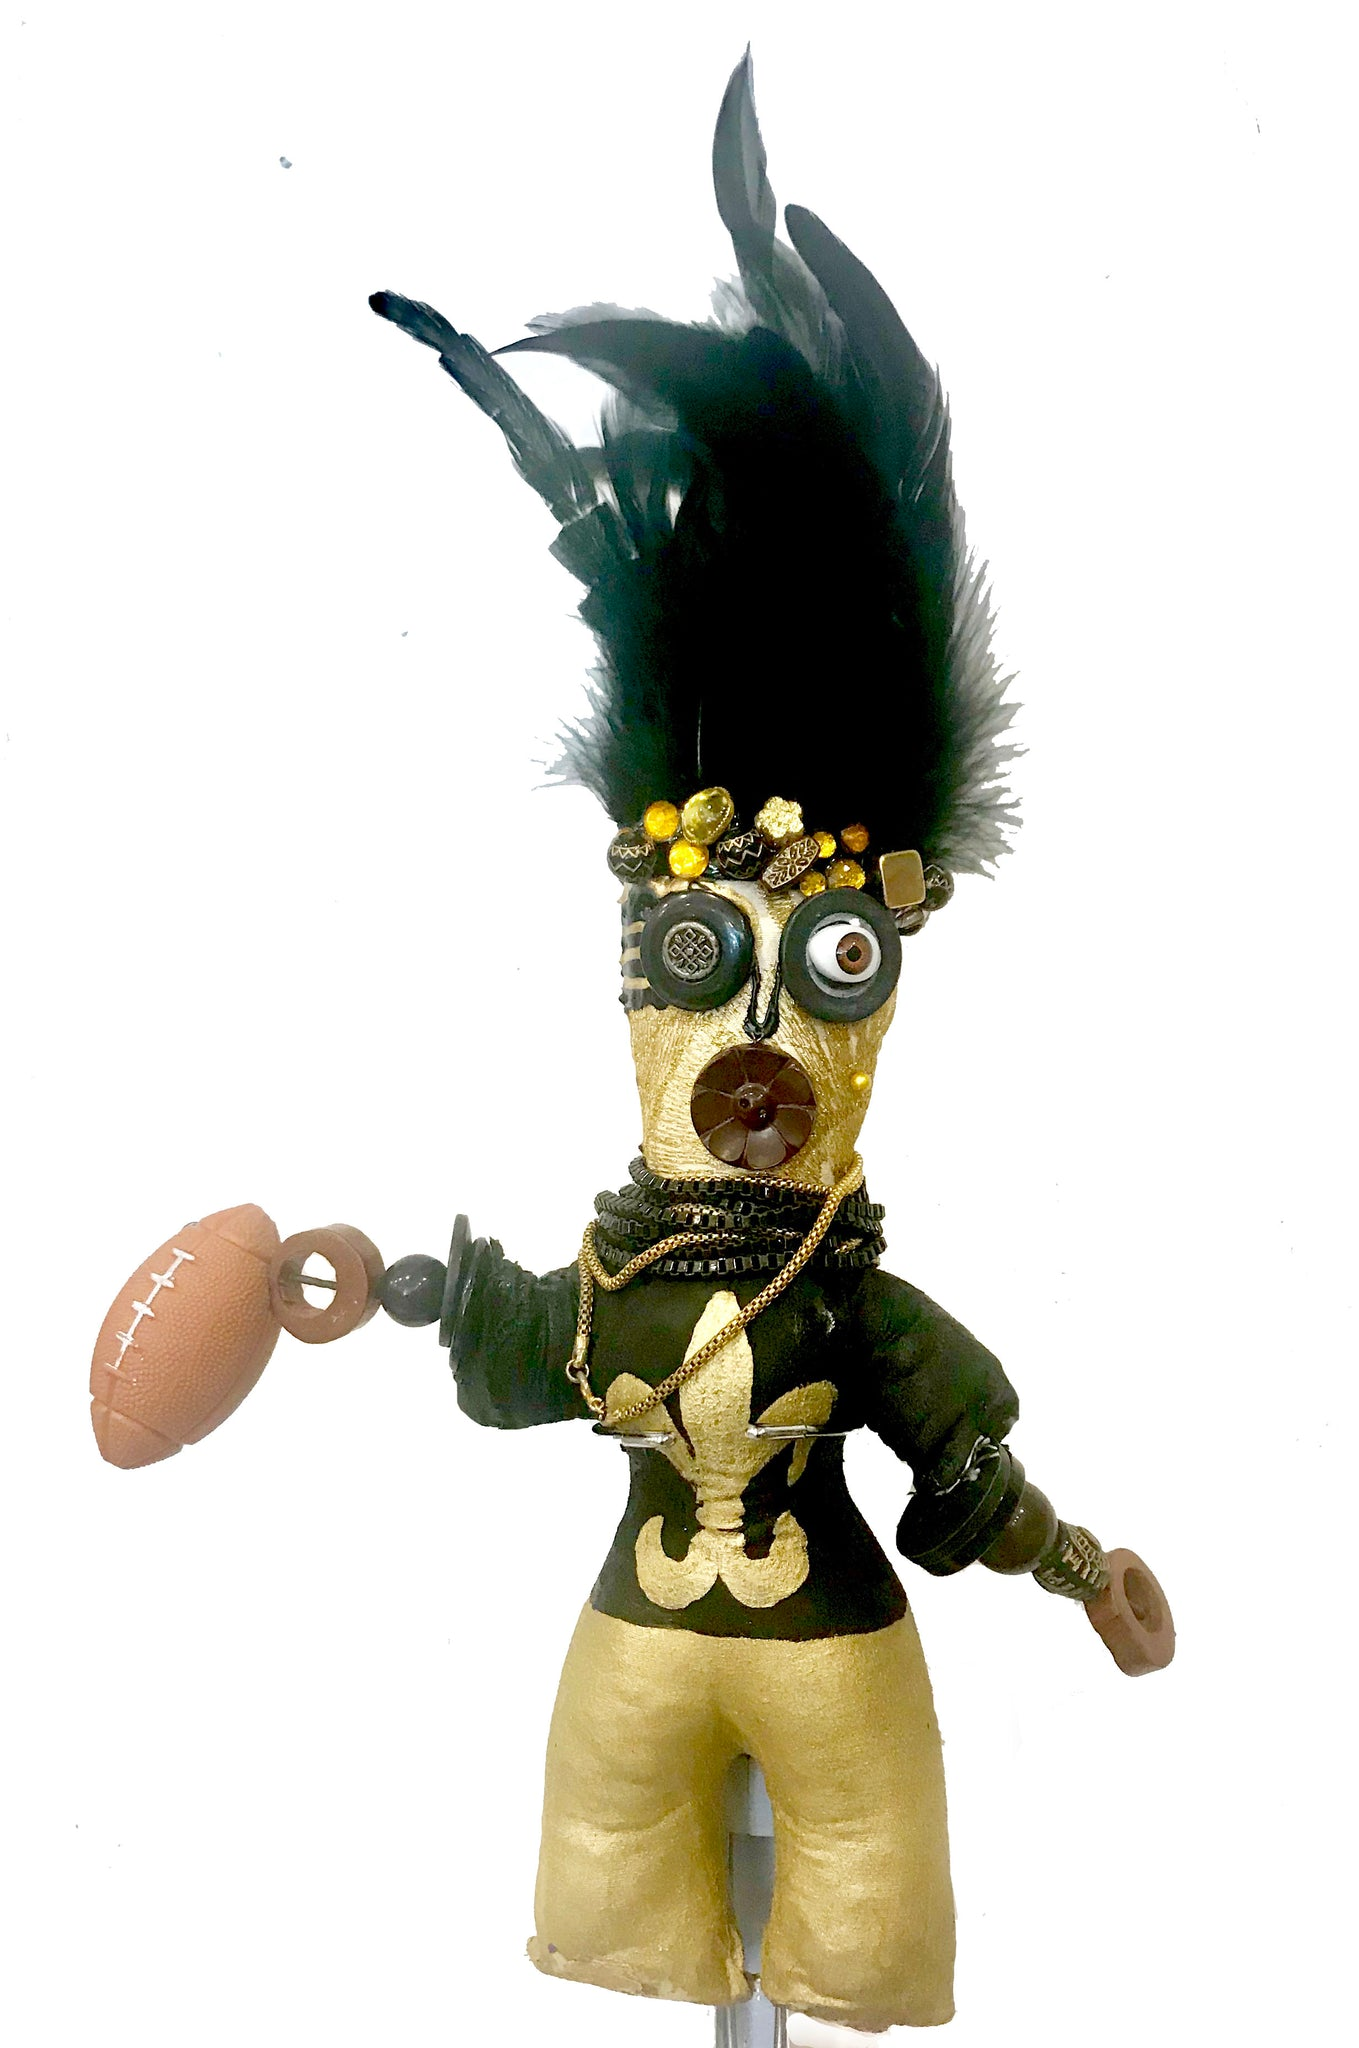 Small Saints Player Voodoo Doll - 318 Art and Garden